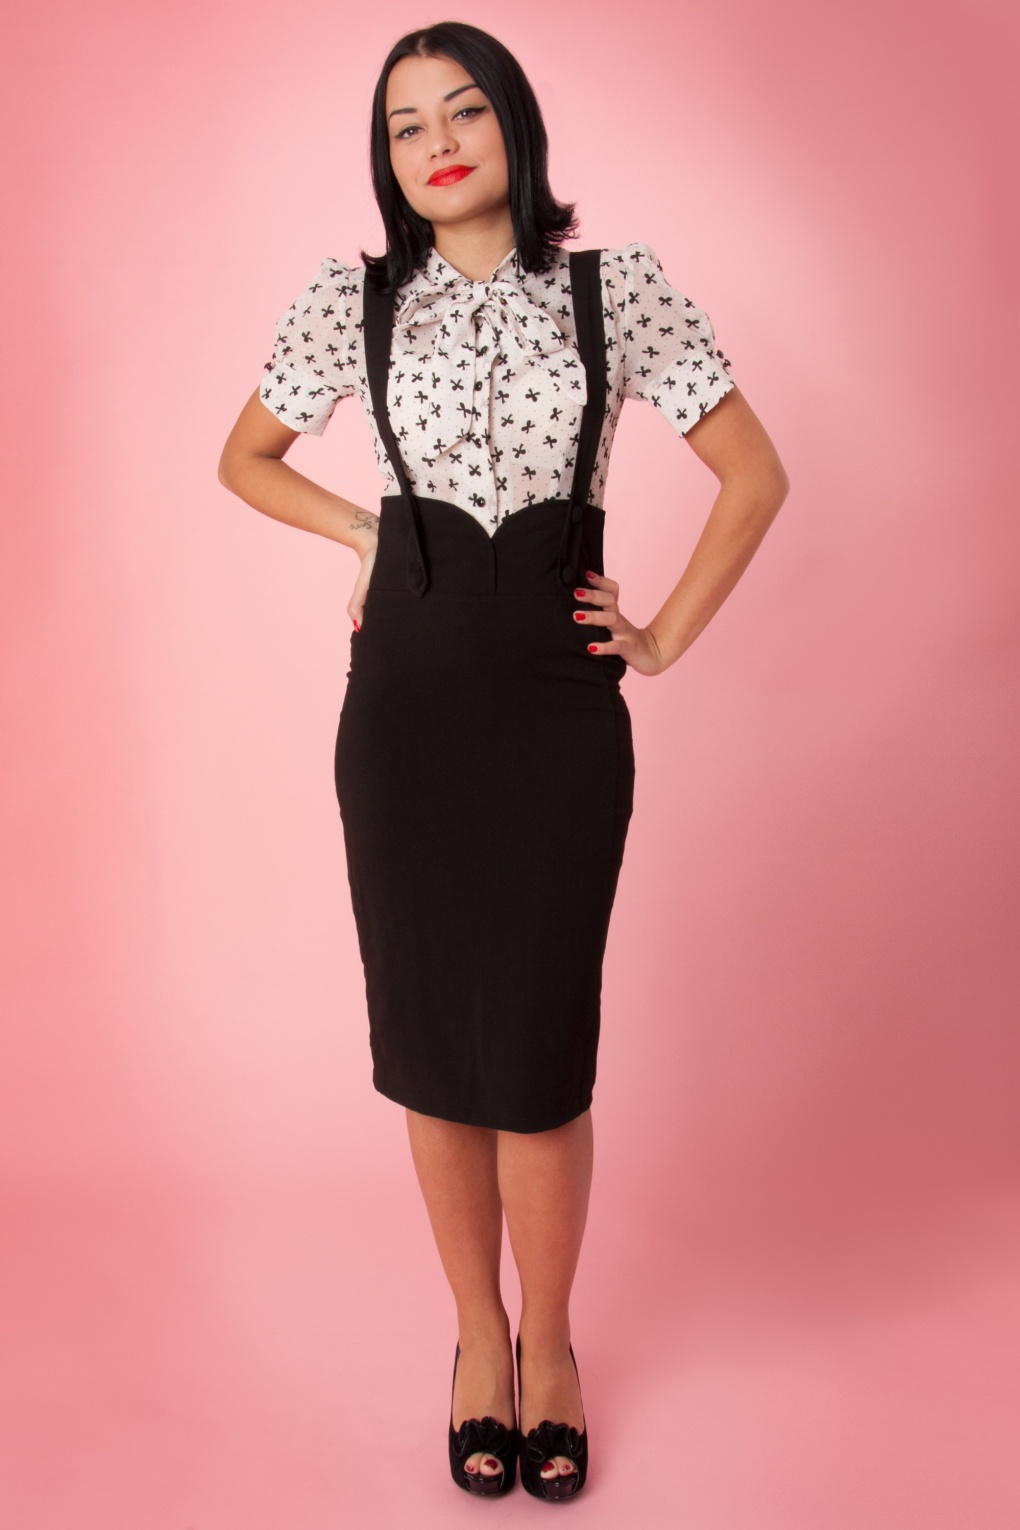 high waisted pencil skirt outfits 20142015 fashion